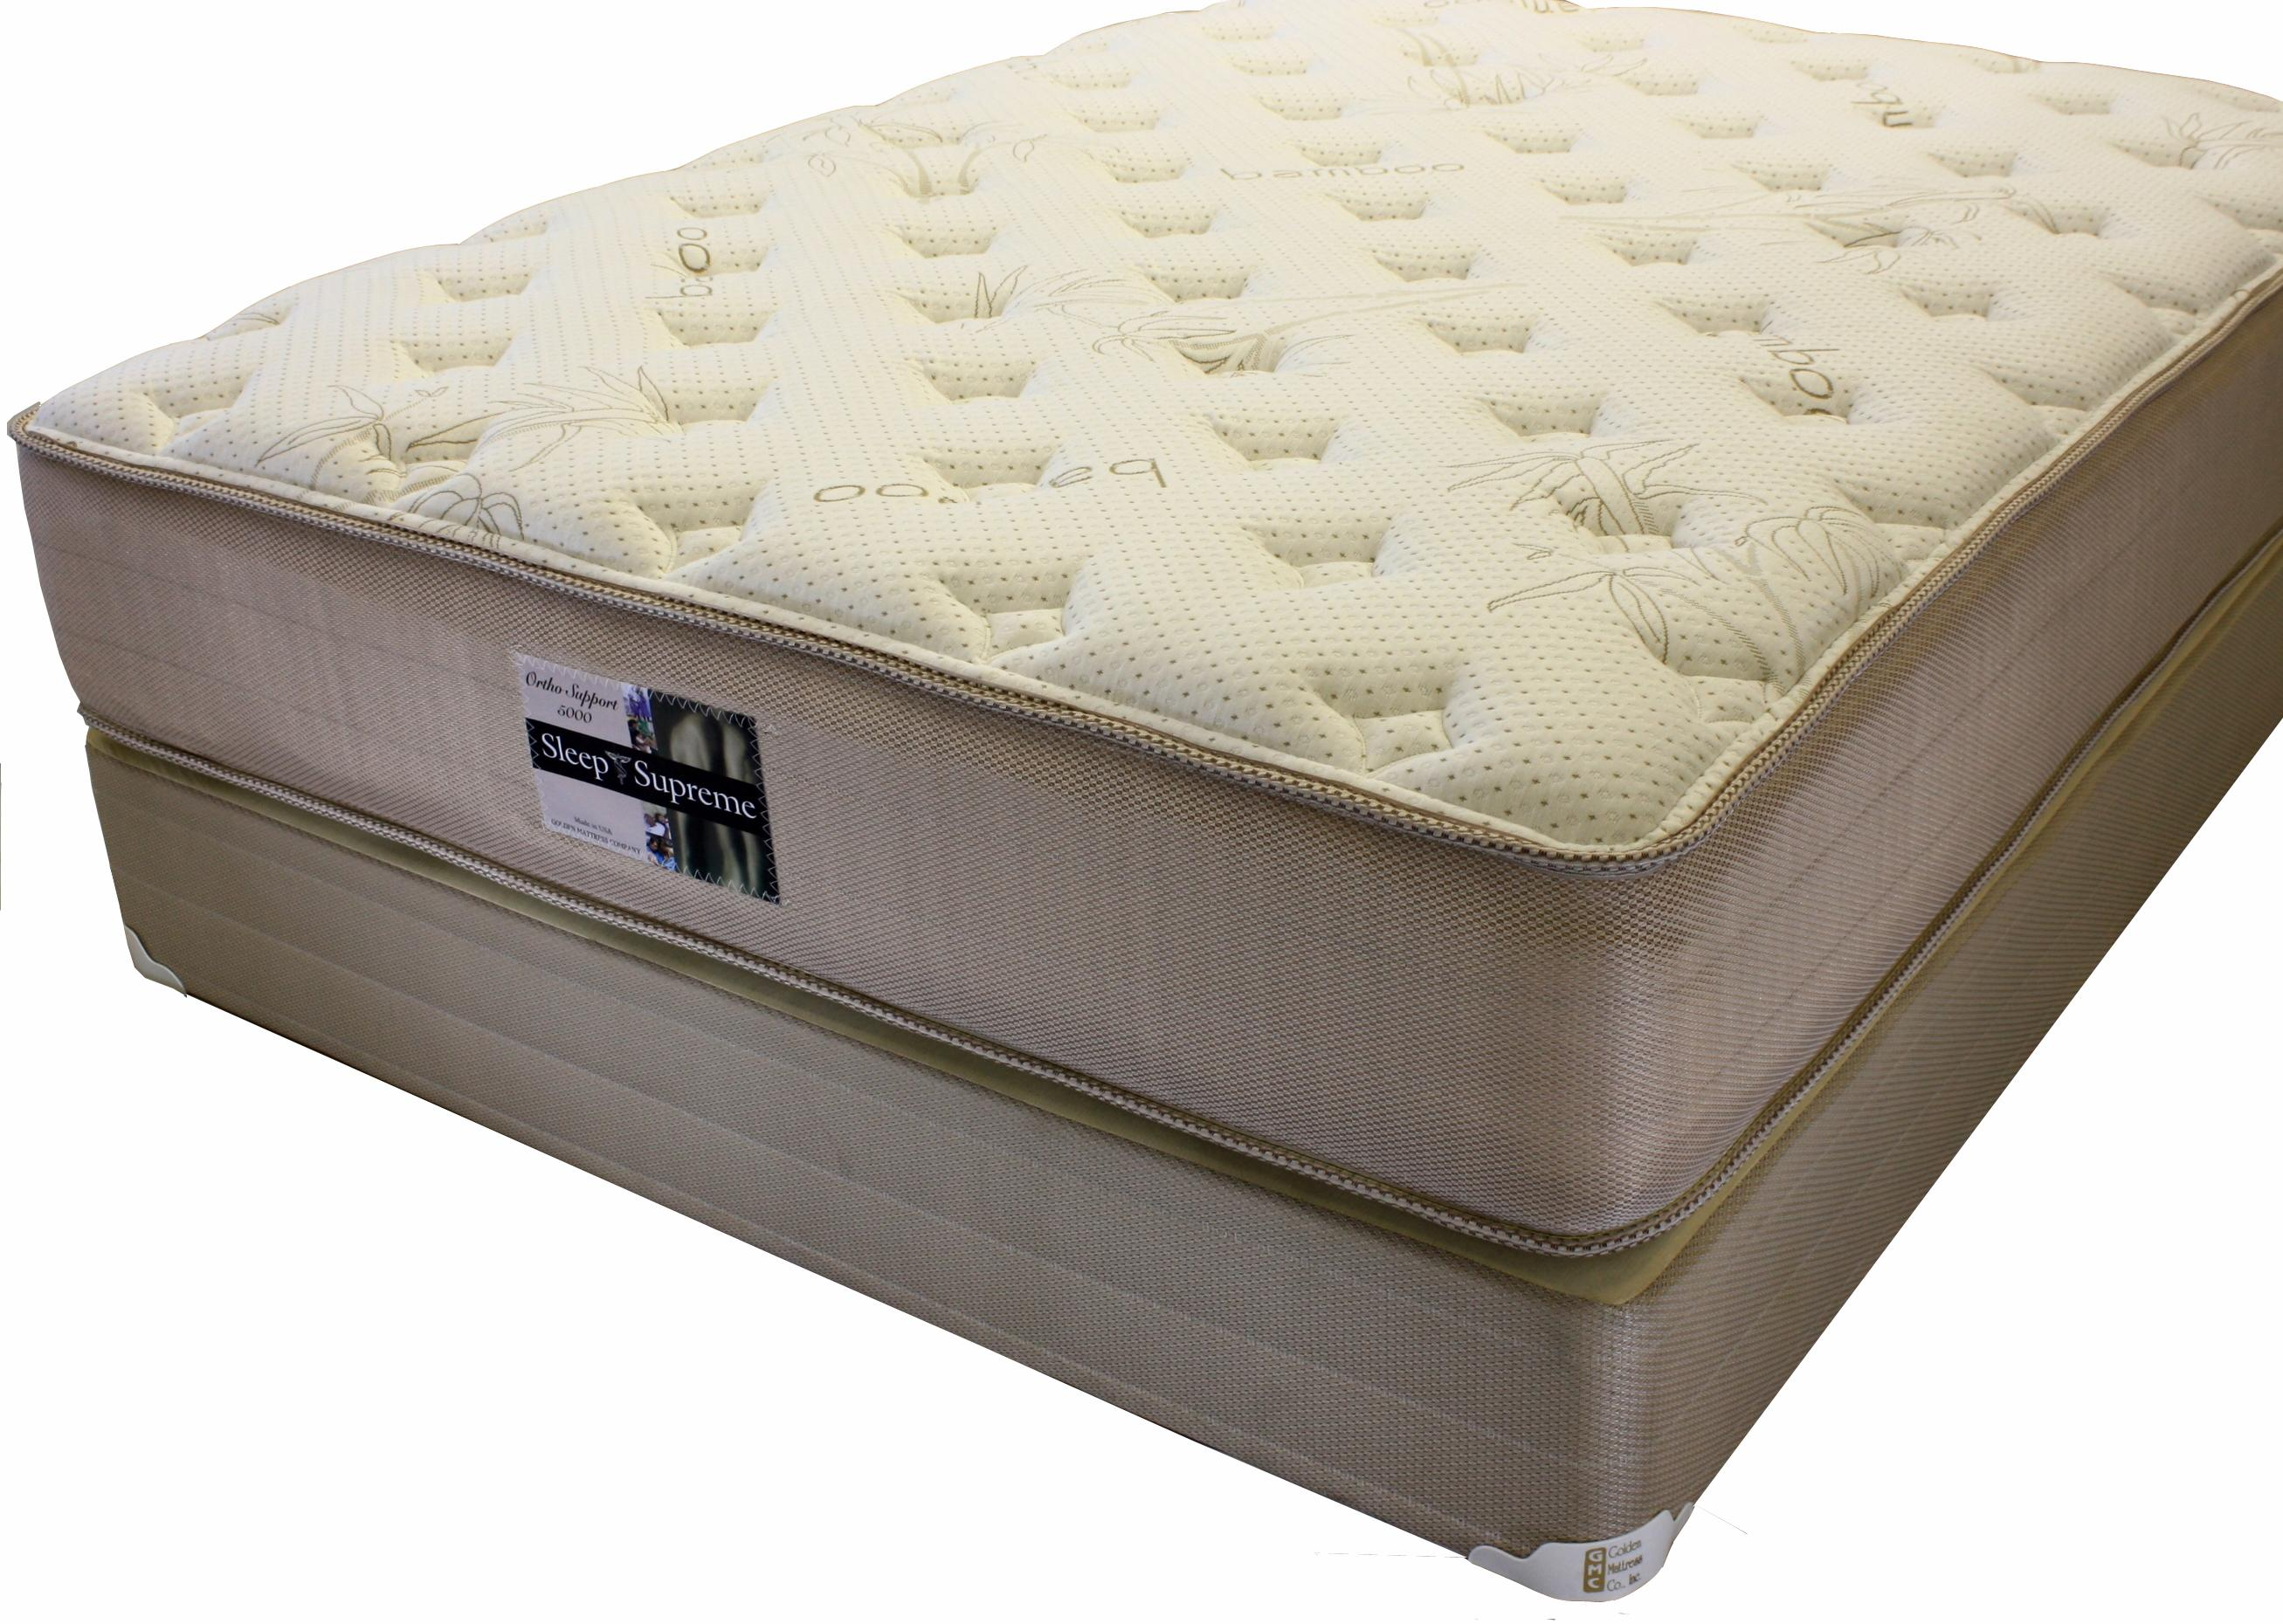 symbol cushion reviews mattress top choice comfortec pillow image and sign stafford blanket gallery